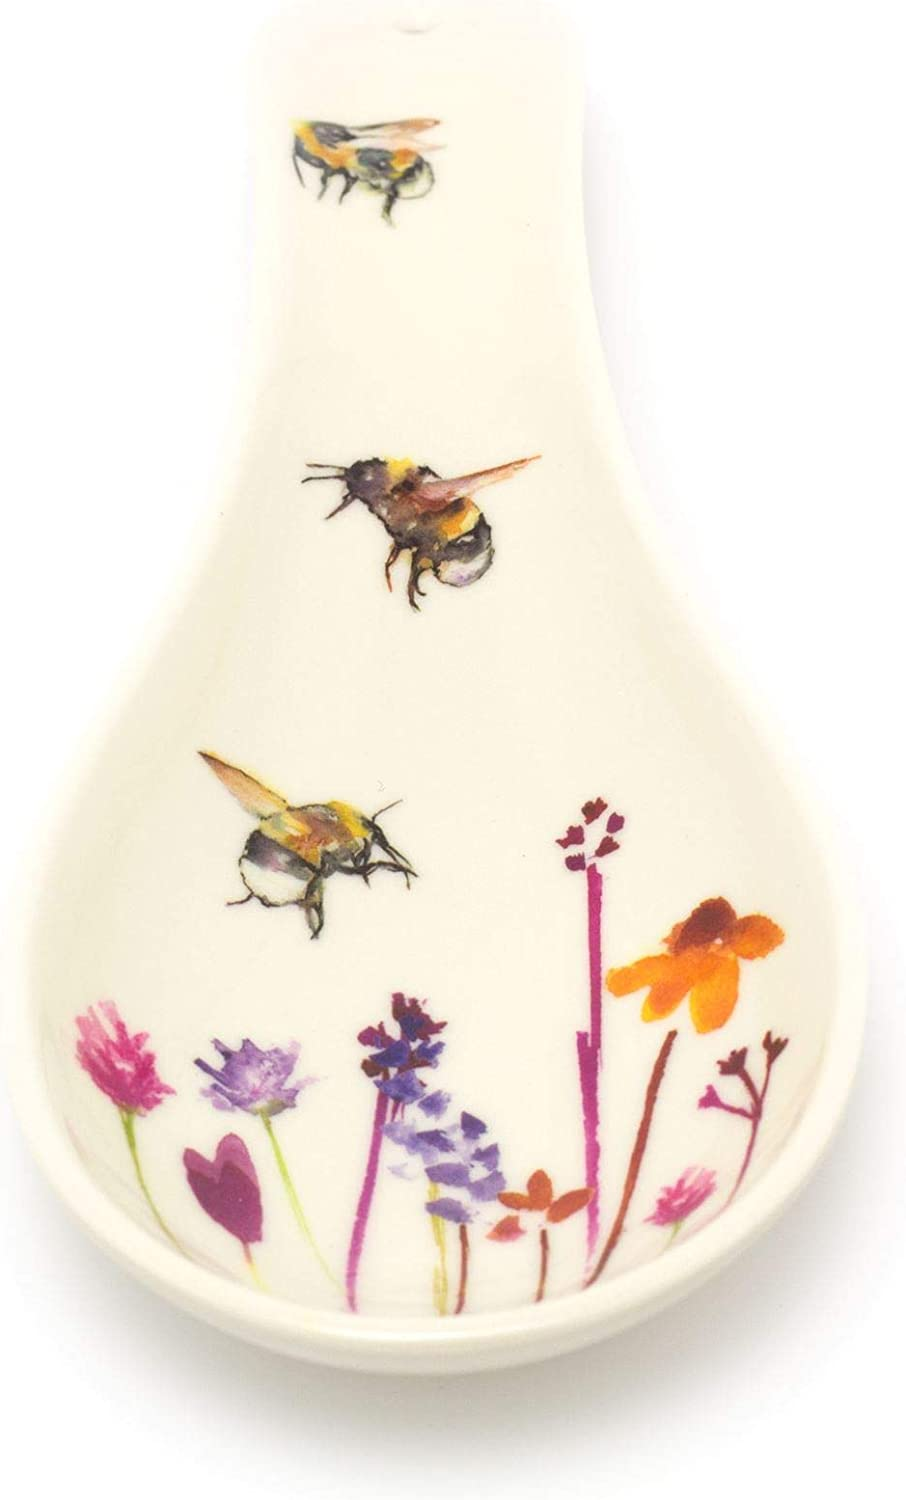 Melamine Floral Kitchen Utensil Rest Carousel Home Gifts 23cm Busy Bee Floral Spoon Holder Bumble Bee Cooking Ladle Spatula Holder